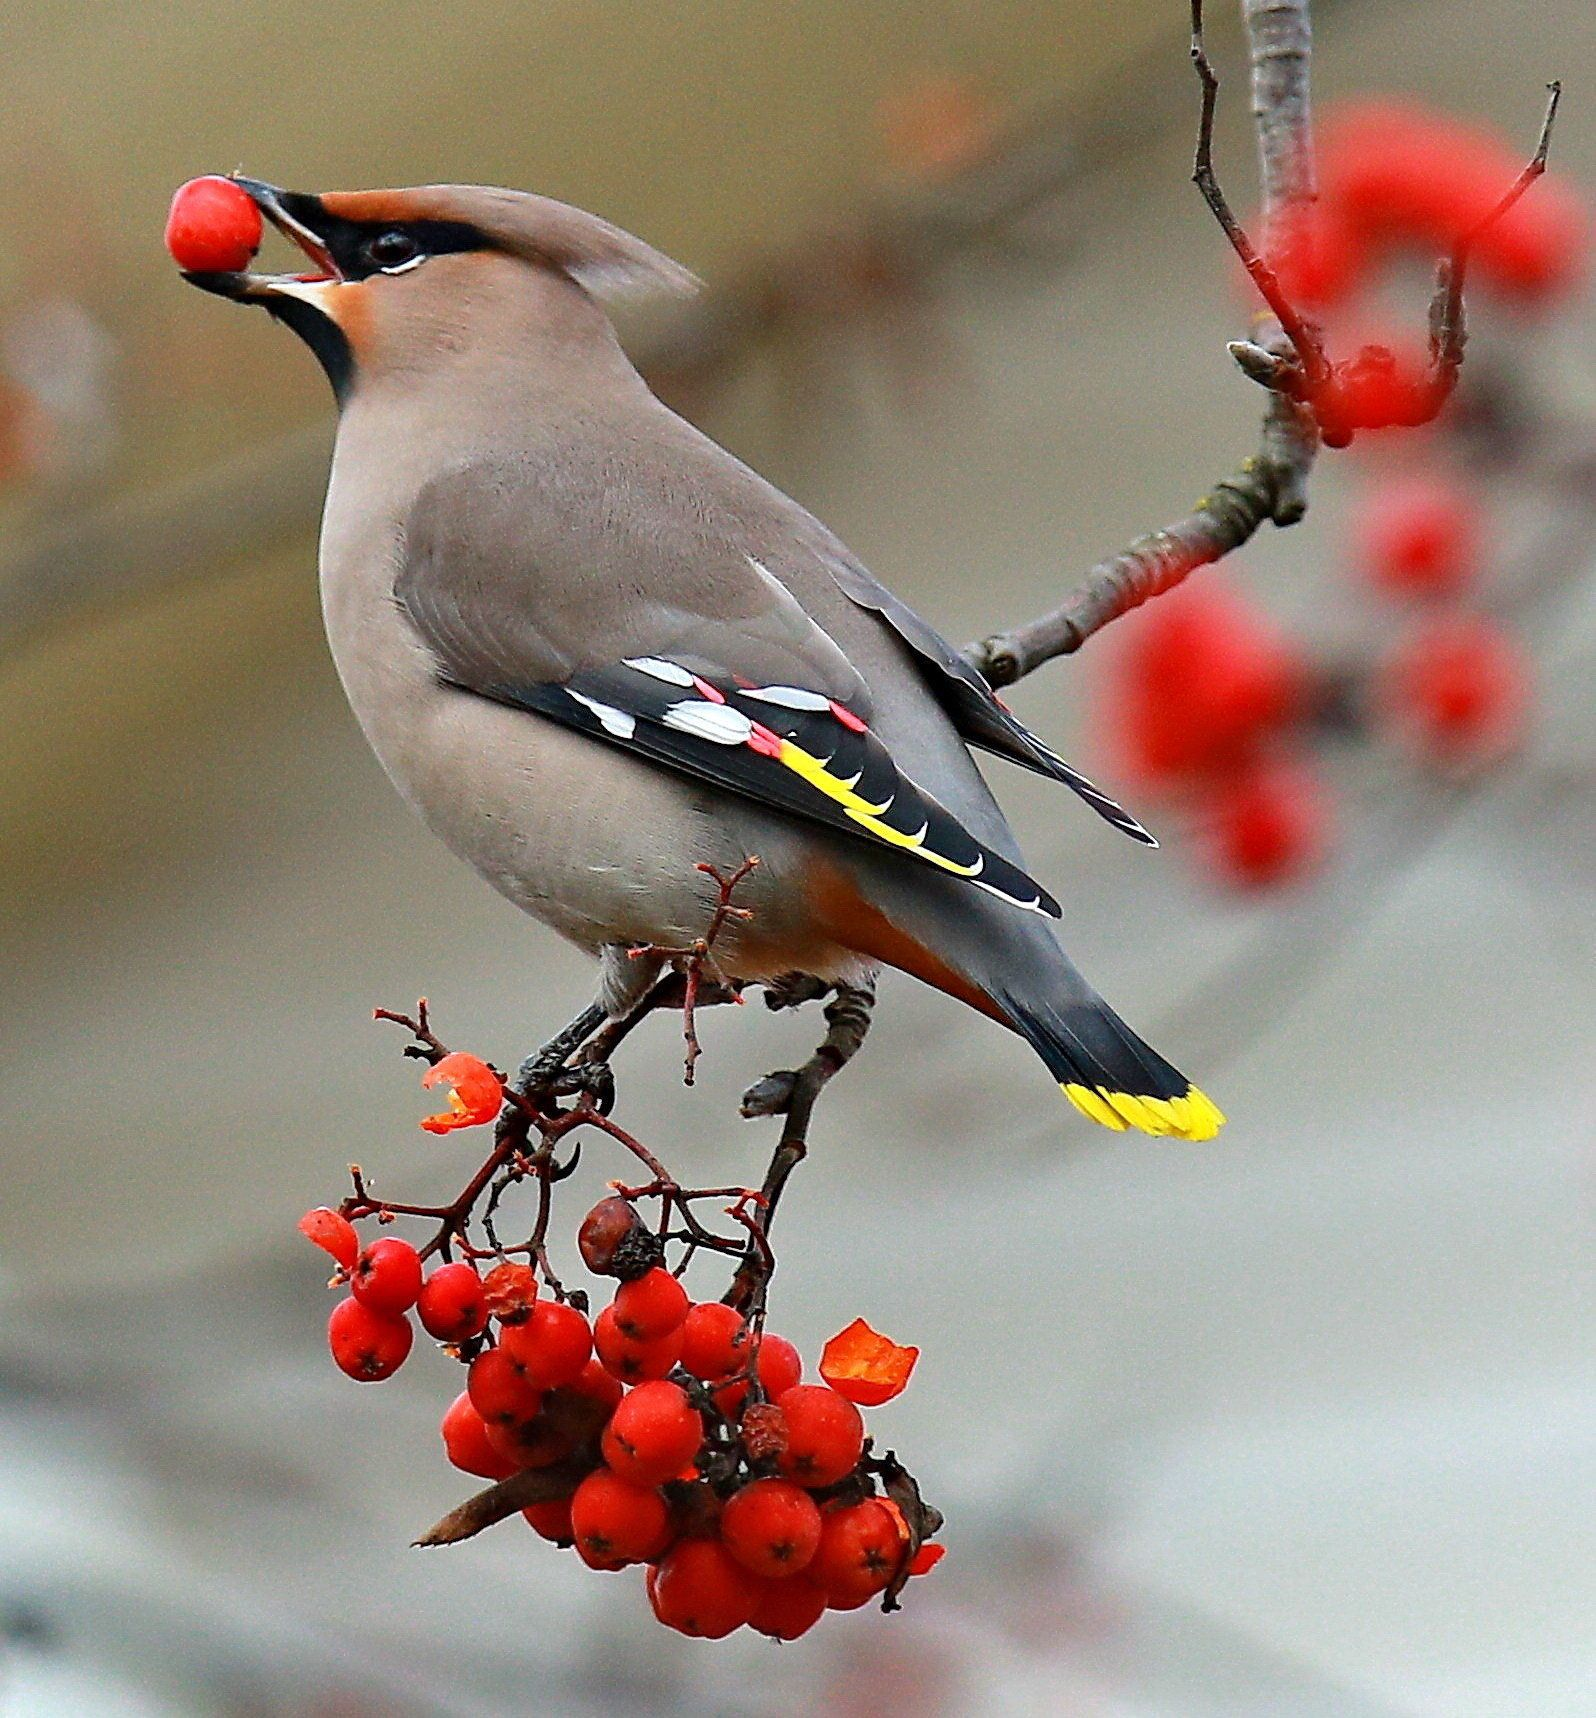 PLYOS, RUSSIA  OCTOBER 16, 2016: A waxwing eating rowan berries. Vladimir Smirnov/TASS (Photo by Vladimir Smirnov\TASS via Getty Images)